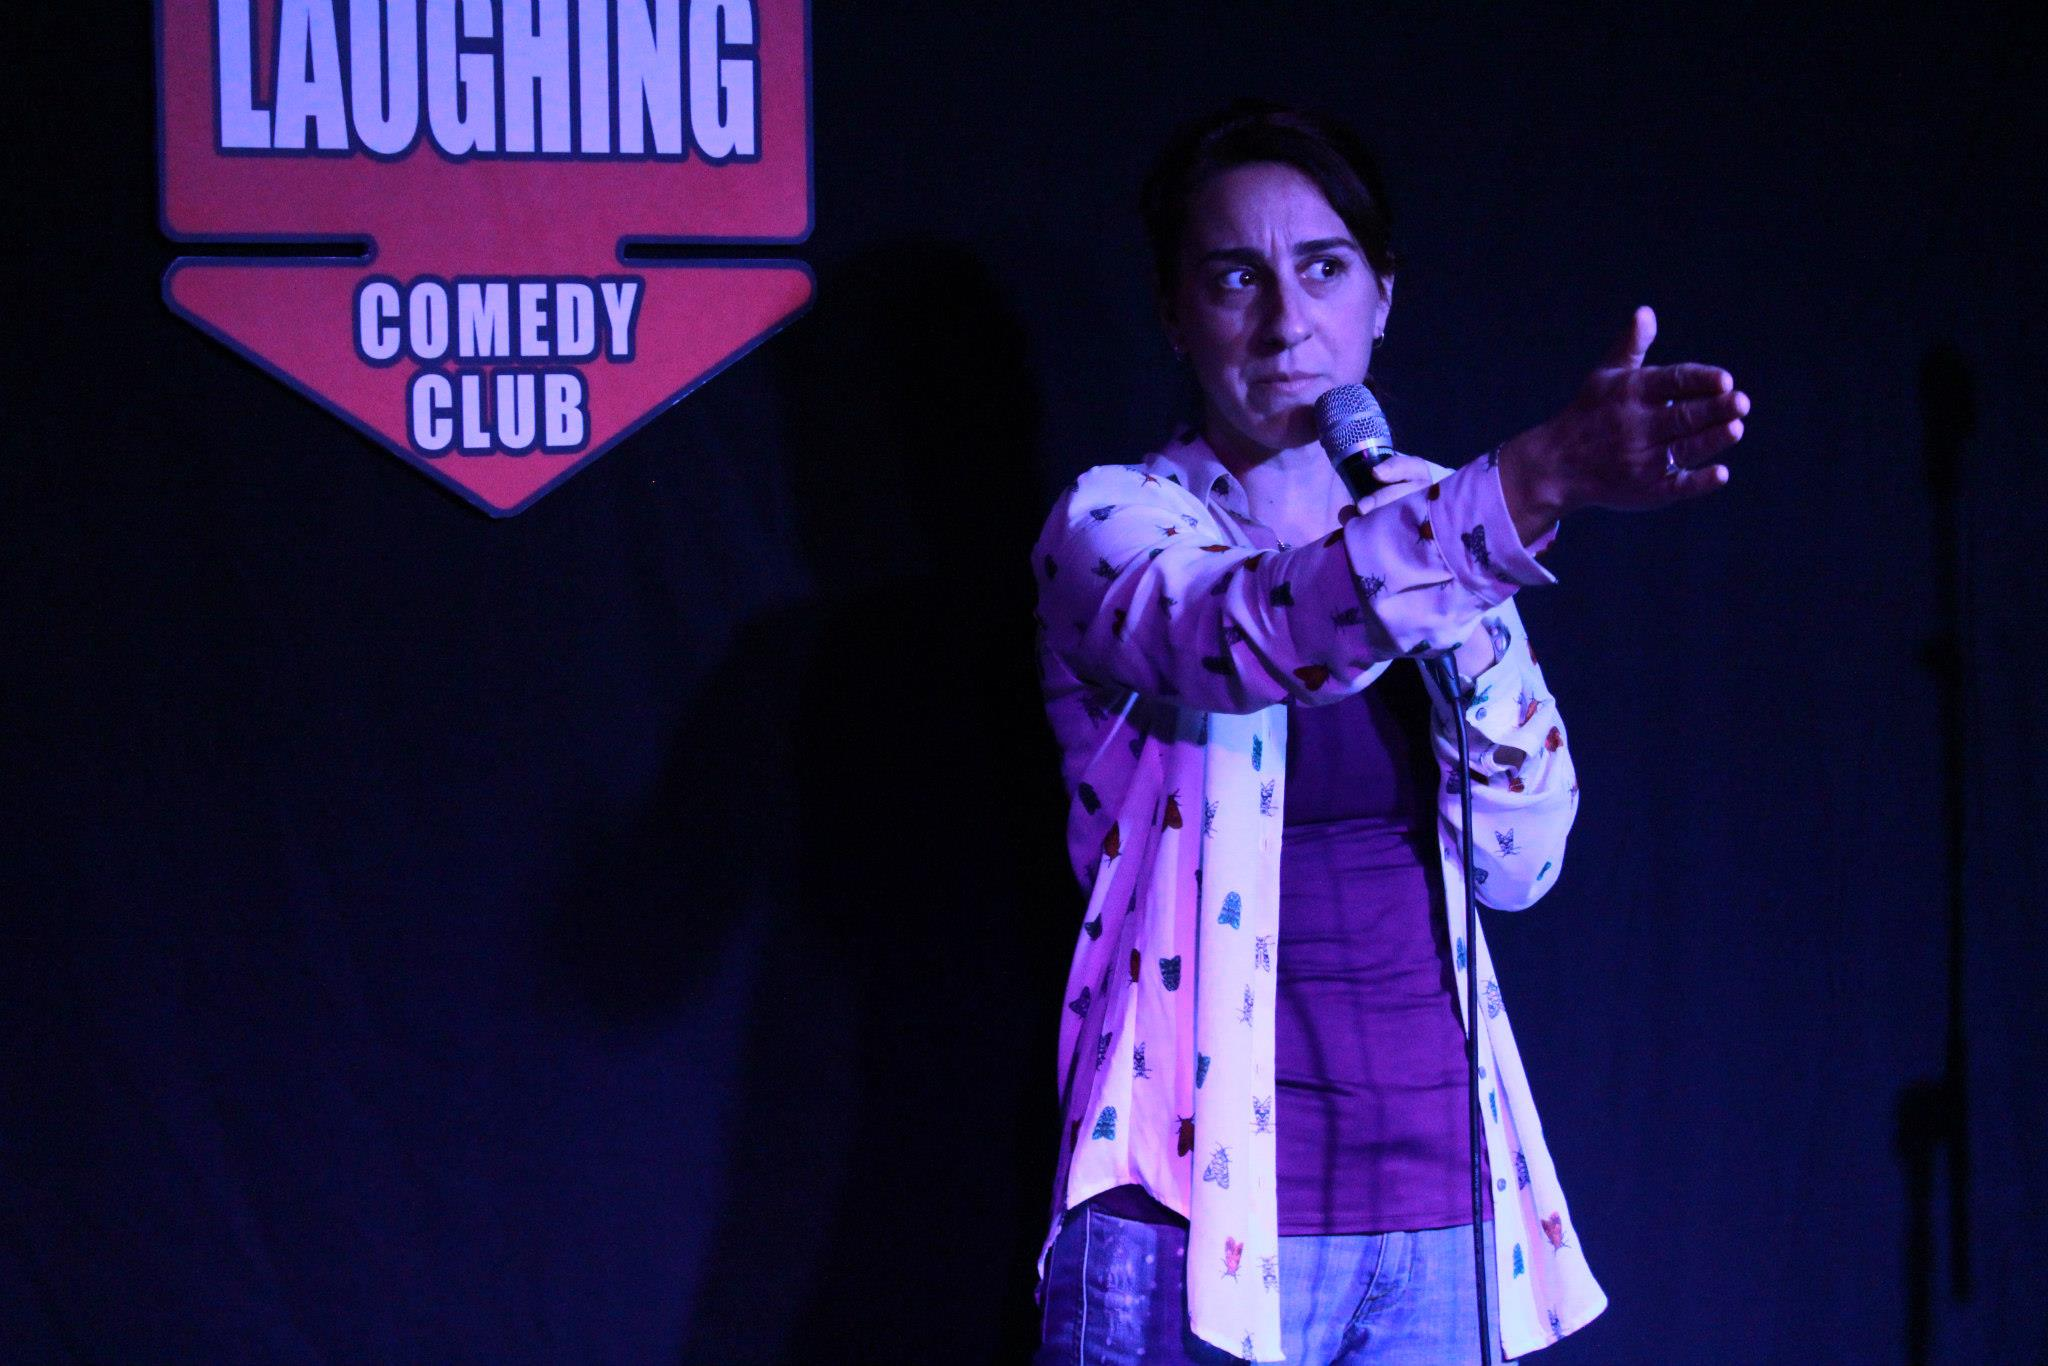 Jess Pratt performing at her student graduation show at The Dubai Laughing Comedy Club.jpg